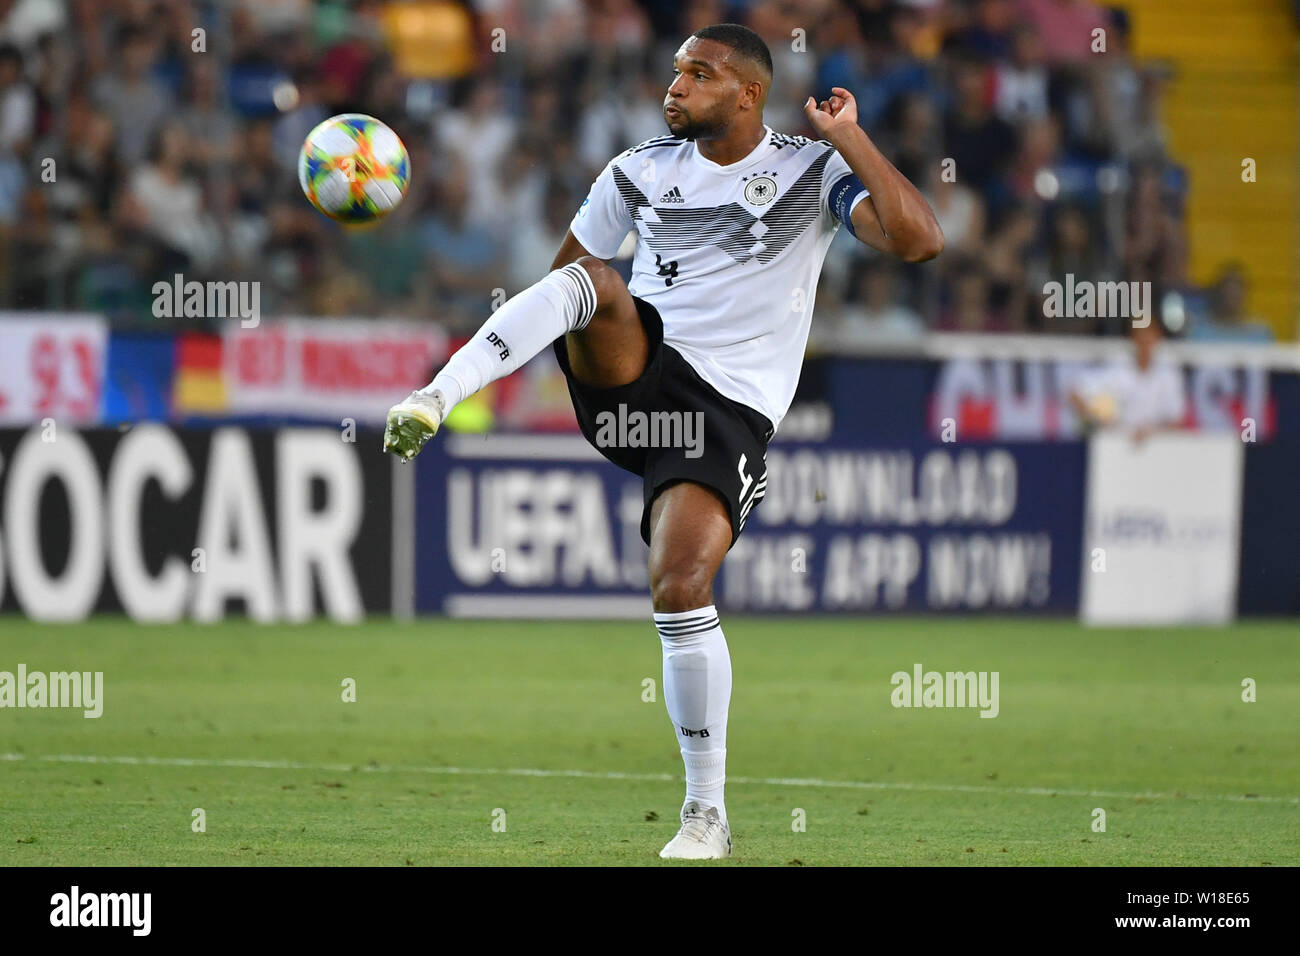 Udine, Italien. 30th June, 2019. Jonathan TAH (GER), Action, Single Action, Frame, Cut Out, Full Body, Whole Figure. Spain (ESP) - Germany (GER) 2-1, at 30.06.2019 Stadio Friuli Udine. Football U-21, FINALE UEFA Under21 European Championship in Italy/SanMarino from 16.-30.06.2019. | Usage worldwide Credit: dpa/Alamy Live News - Stock Image